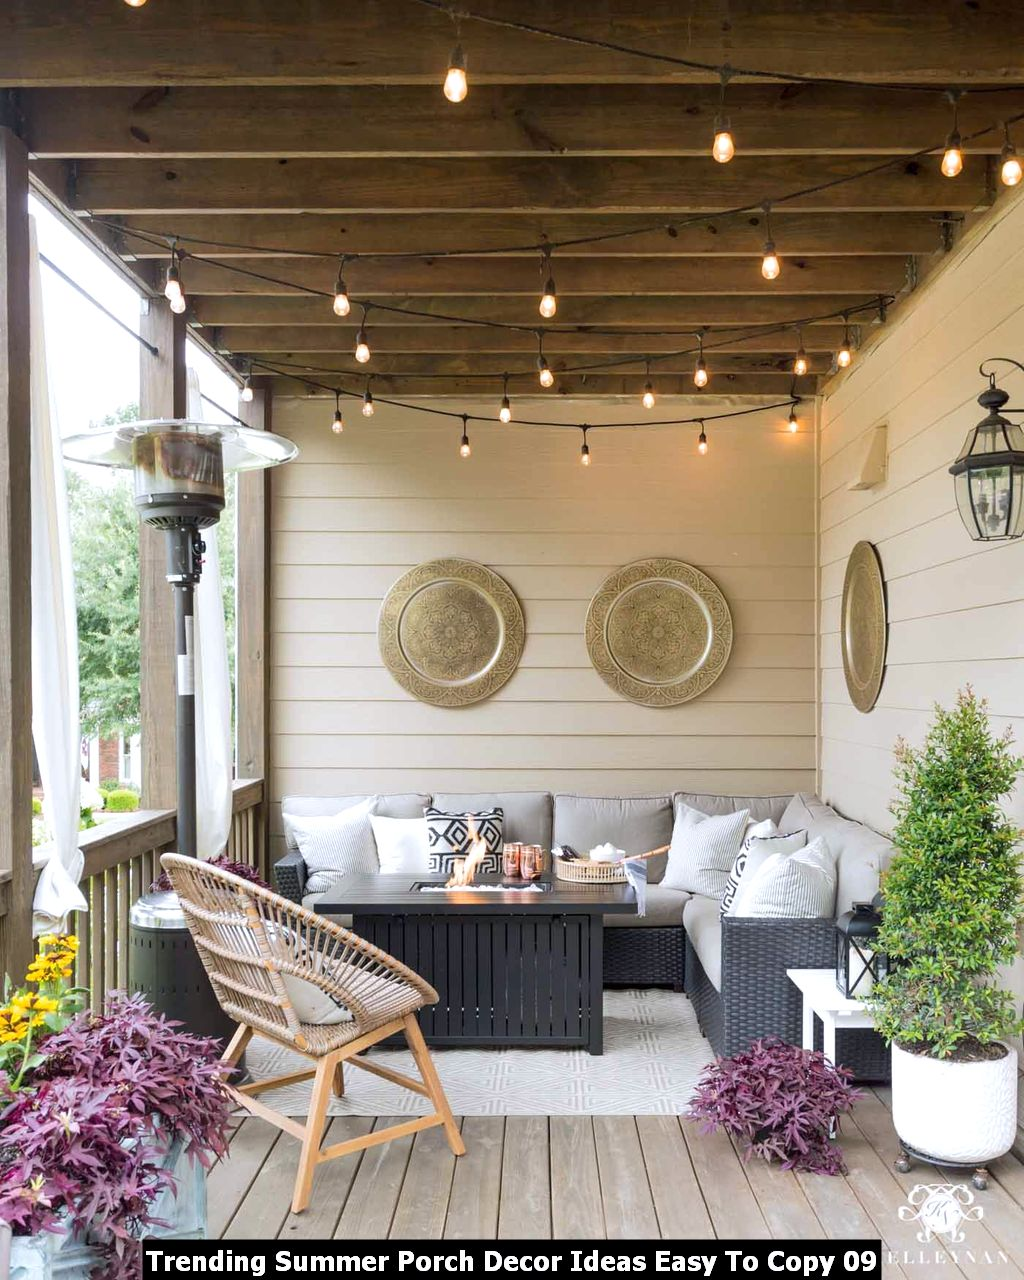 Trending Summer Porch Decor Ideas Easy To Copy 09